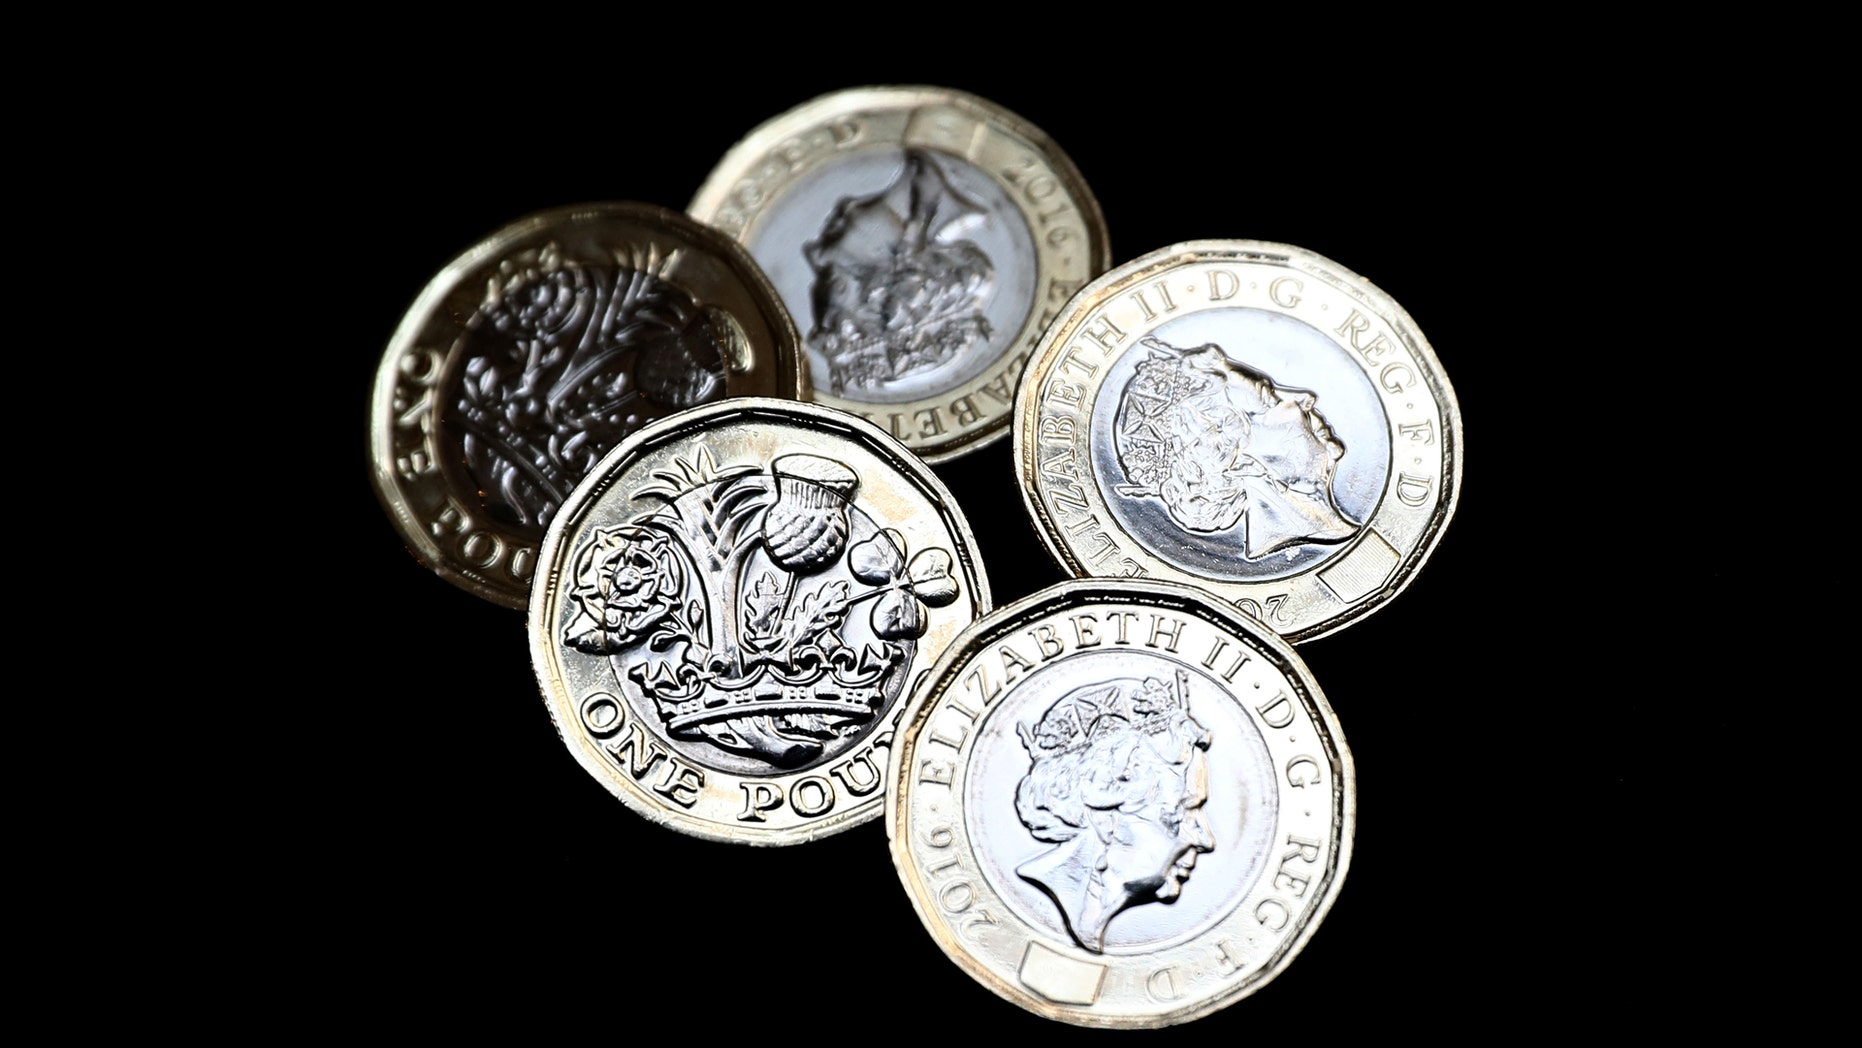 File photo - New one pound coins, which come into circulation today, are seen in London, Britain March 28, 2017 (REUTERS/Neil Hall).